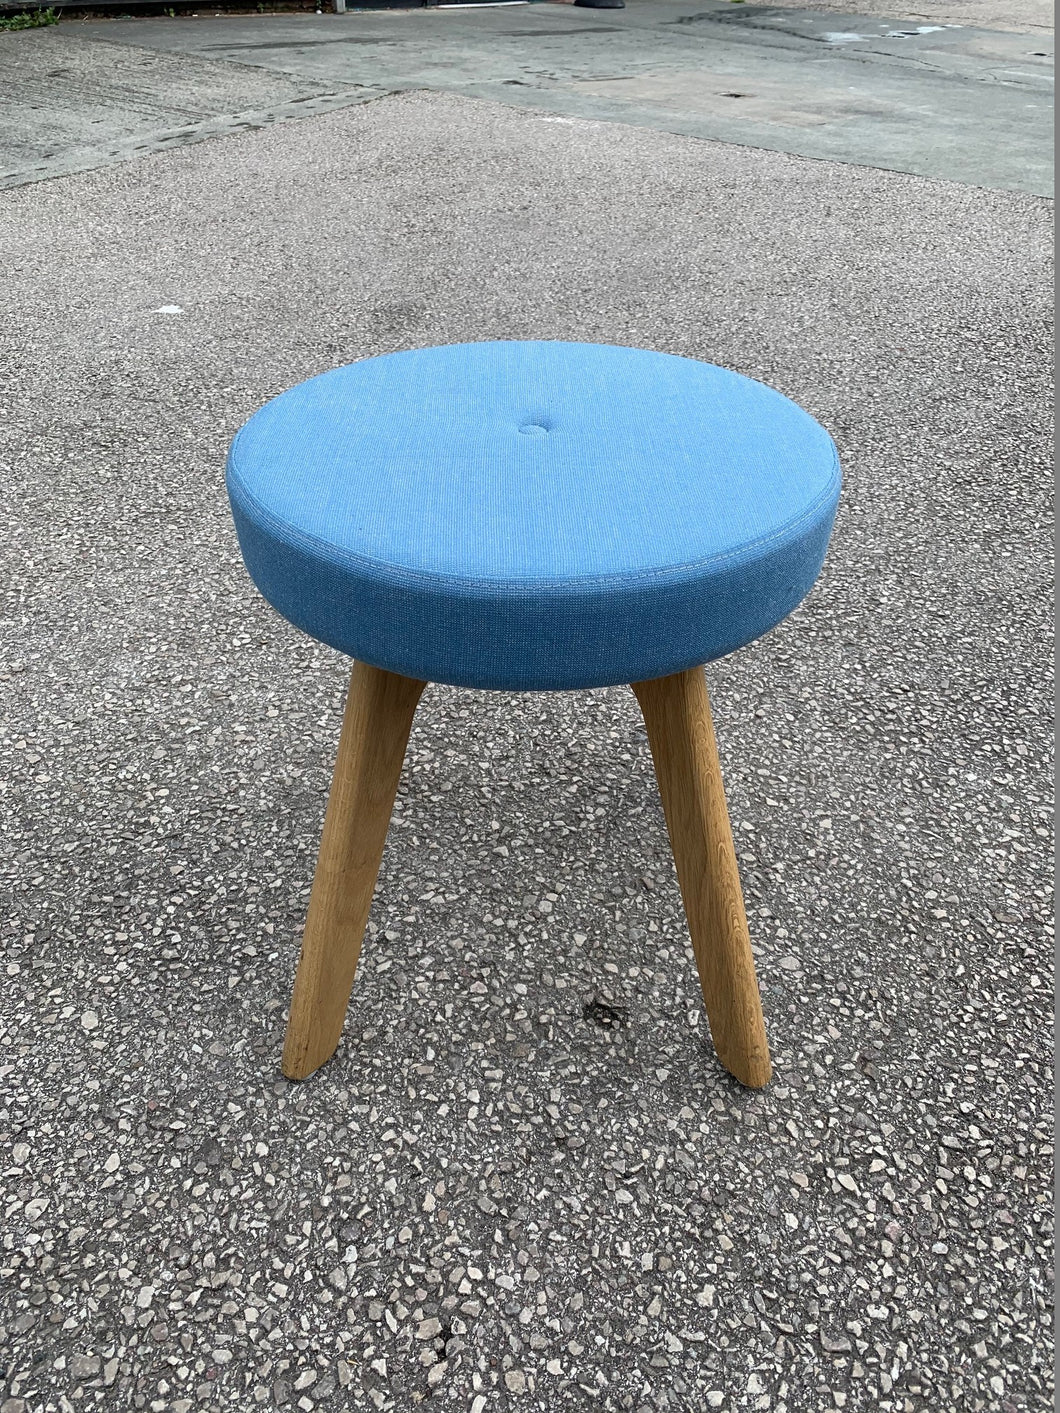 Connection Centro Upholstered Low Stool - Blue